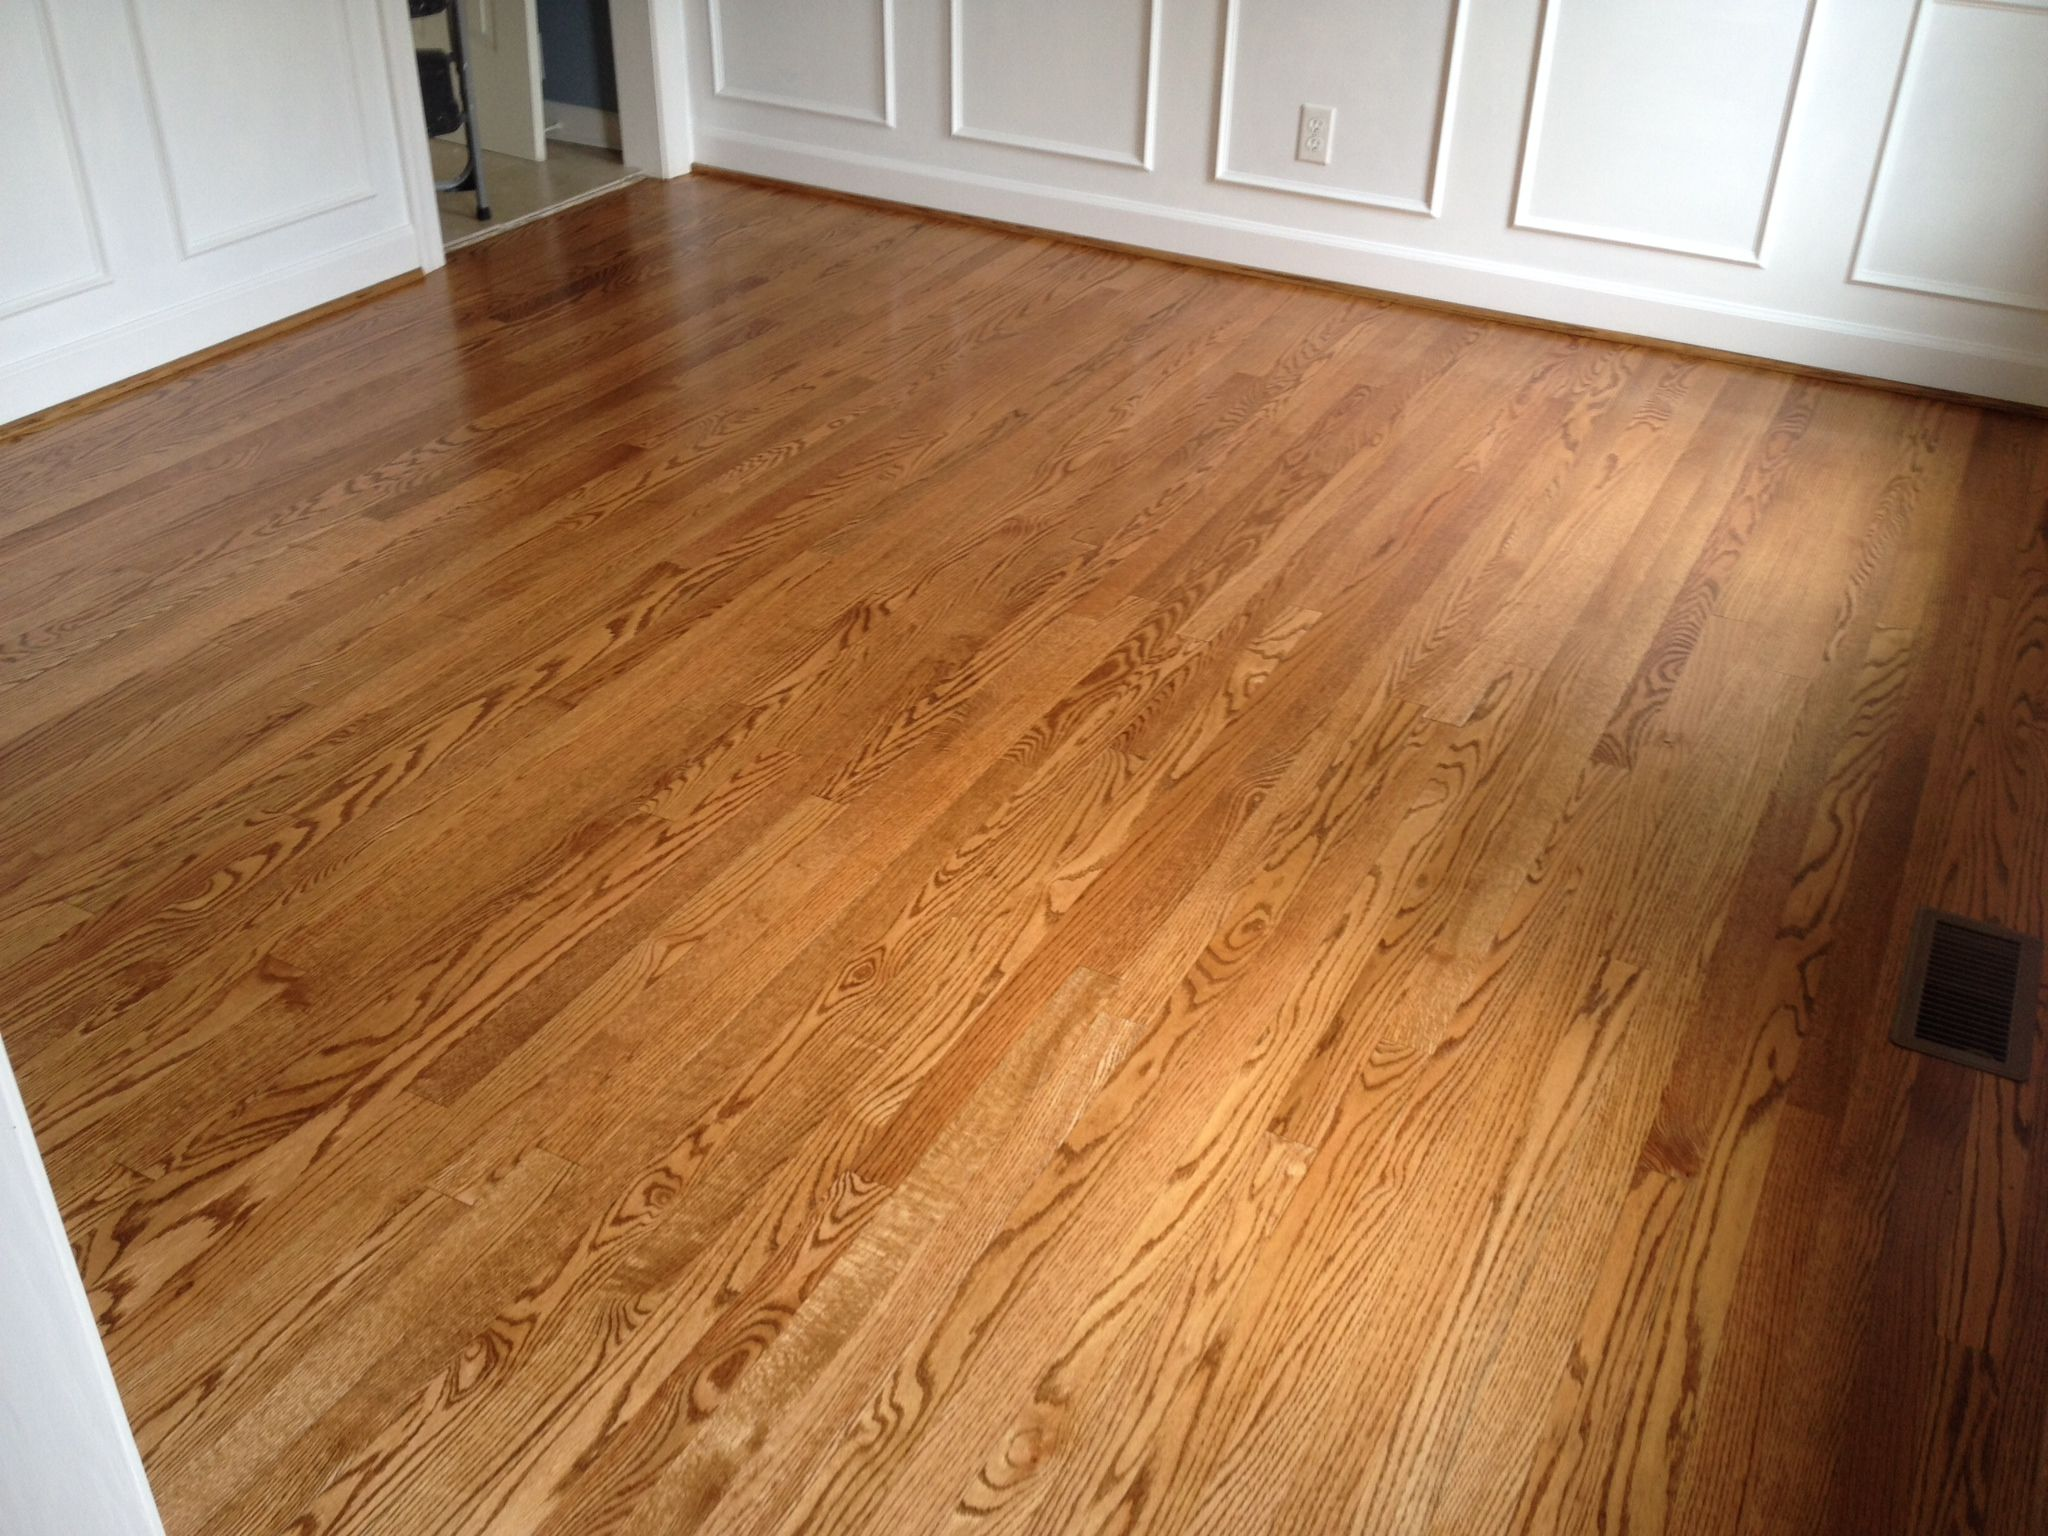 Refinished Select And Better 2 1 4 Red Oak Flooring Finished On Site With 1 Coat Stain 2 Coats Semi Gloss Red Oak Floors Flooring Hardwood Floor Stain Colors